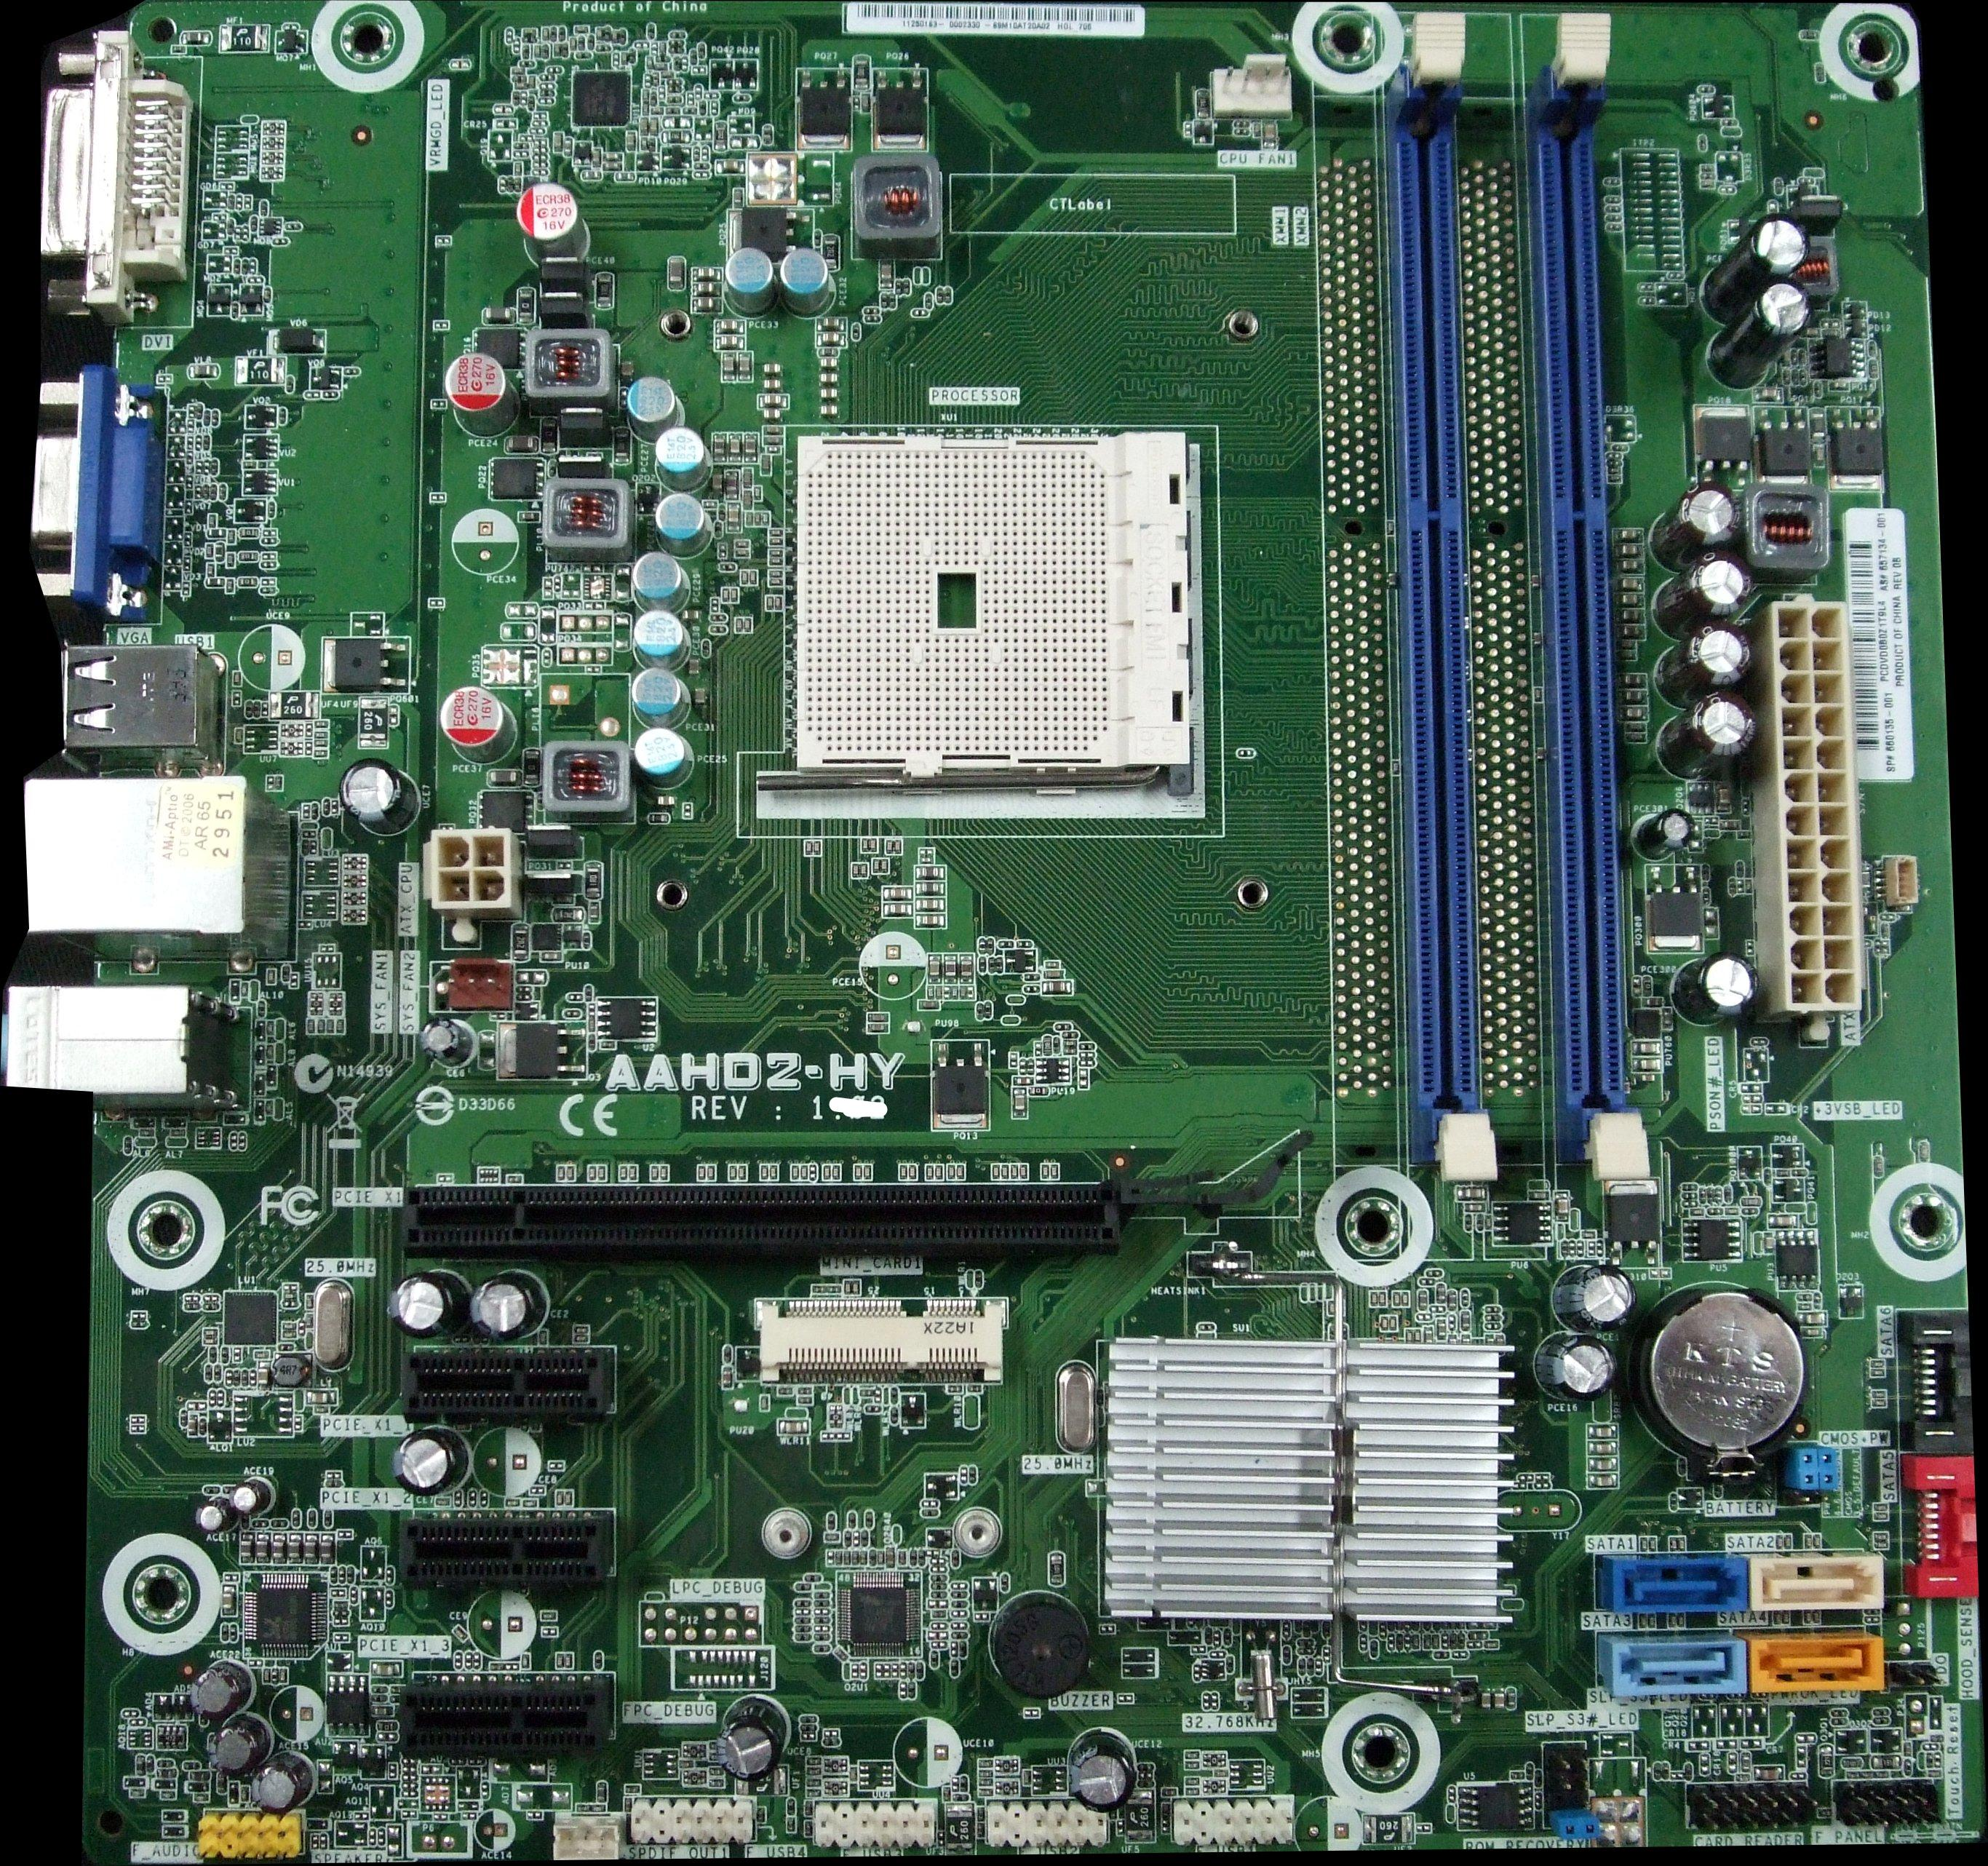 UNTESTED HP 660155-001 Socket AMD FM1 System Motherboard - AAHD2-HY